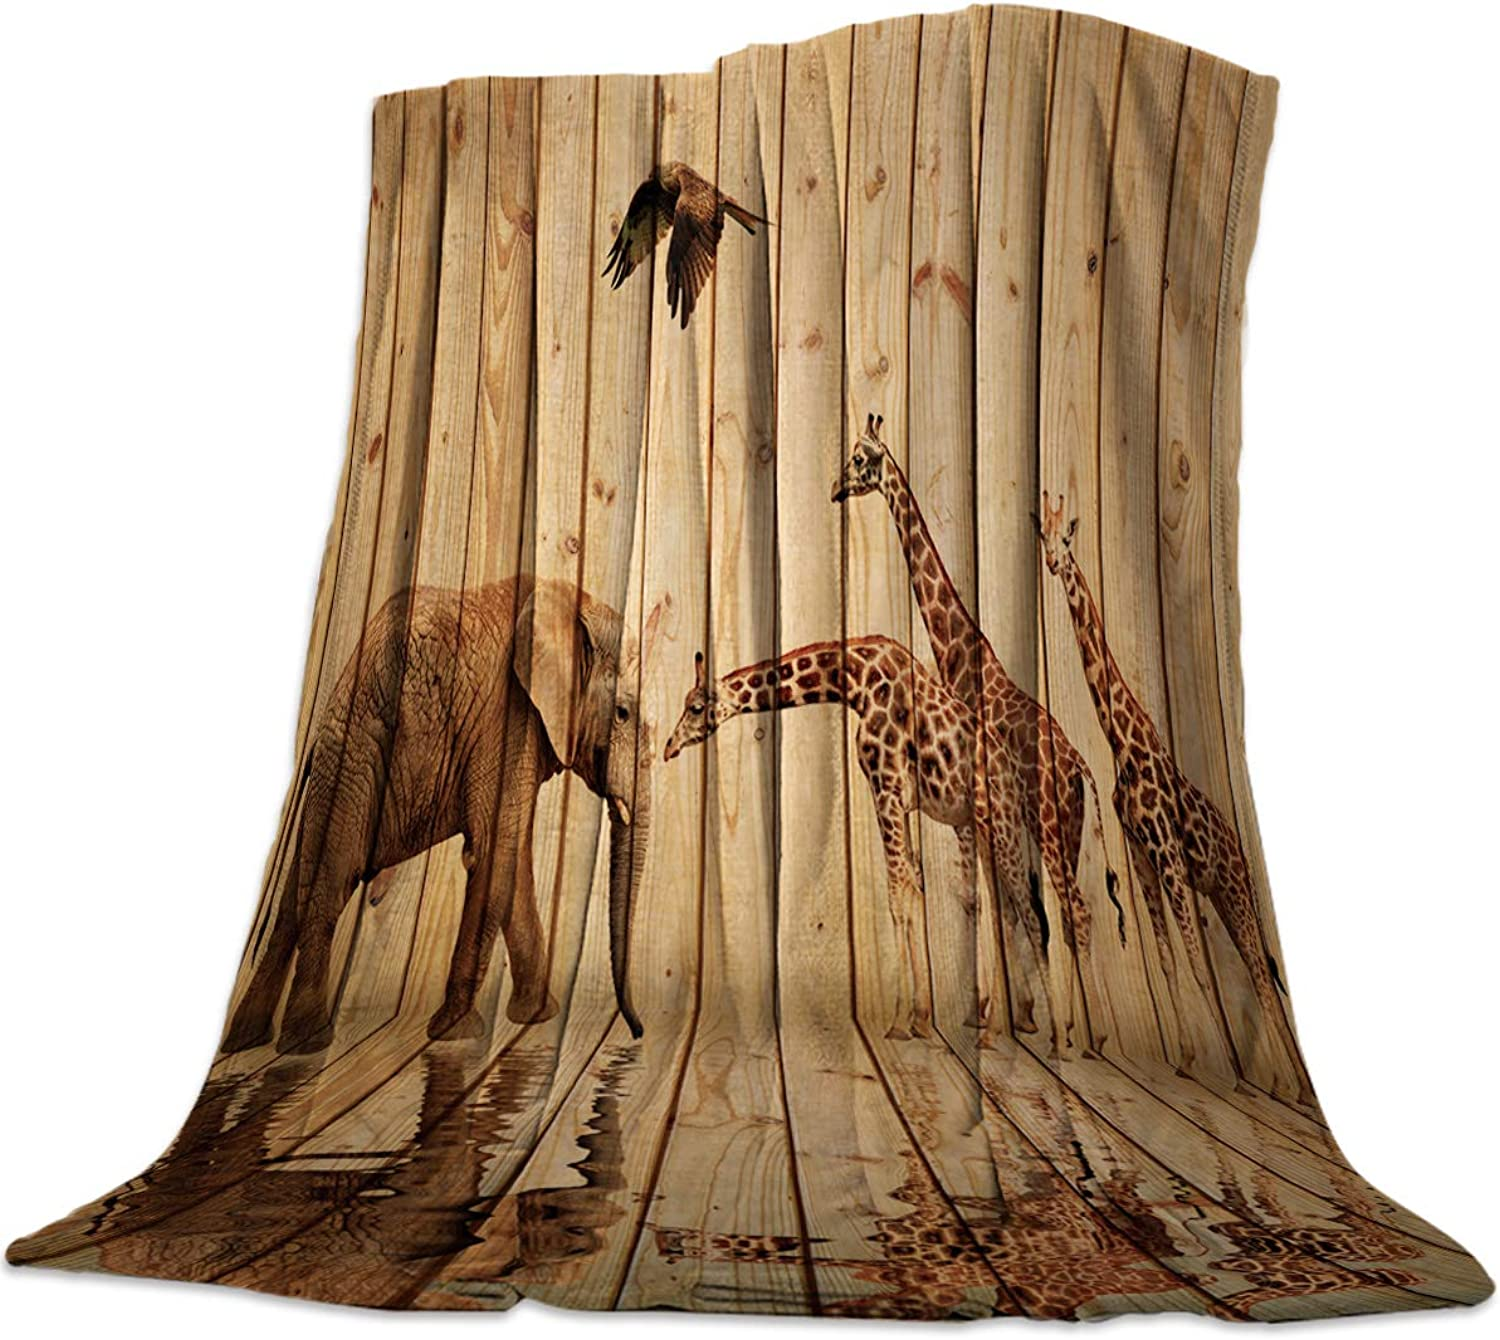 39x49 Inch Flannel Fleece Bed Blanket Soft Throw-Blankets for Girls Boys,Retro Giraffe Elephant Animal Pattern on The Wood,Cozy Lightweight Blankets for Bedroom Living Room Sofa Couch